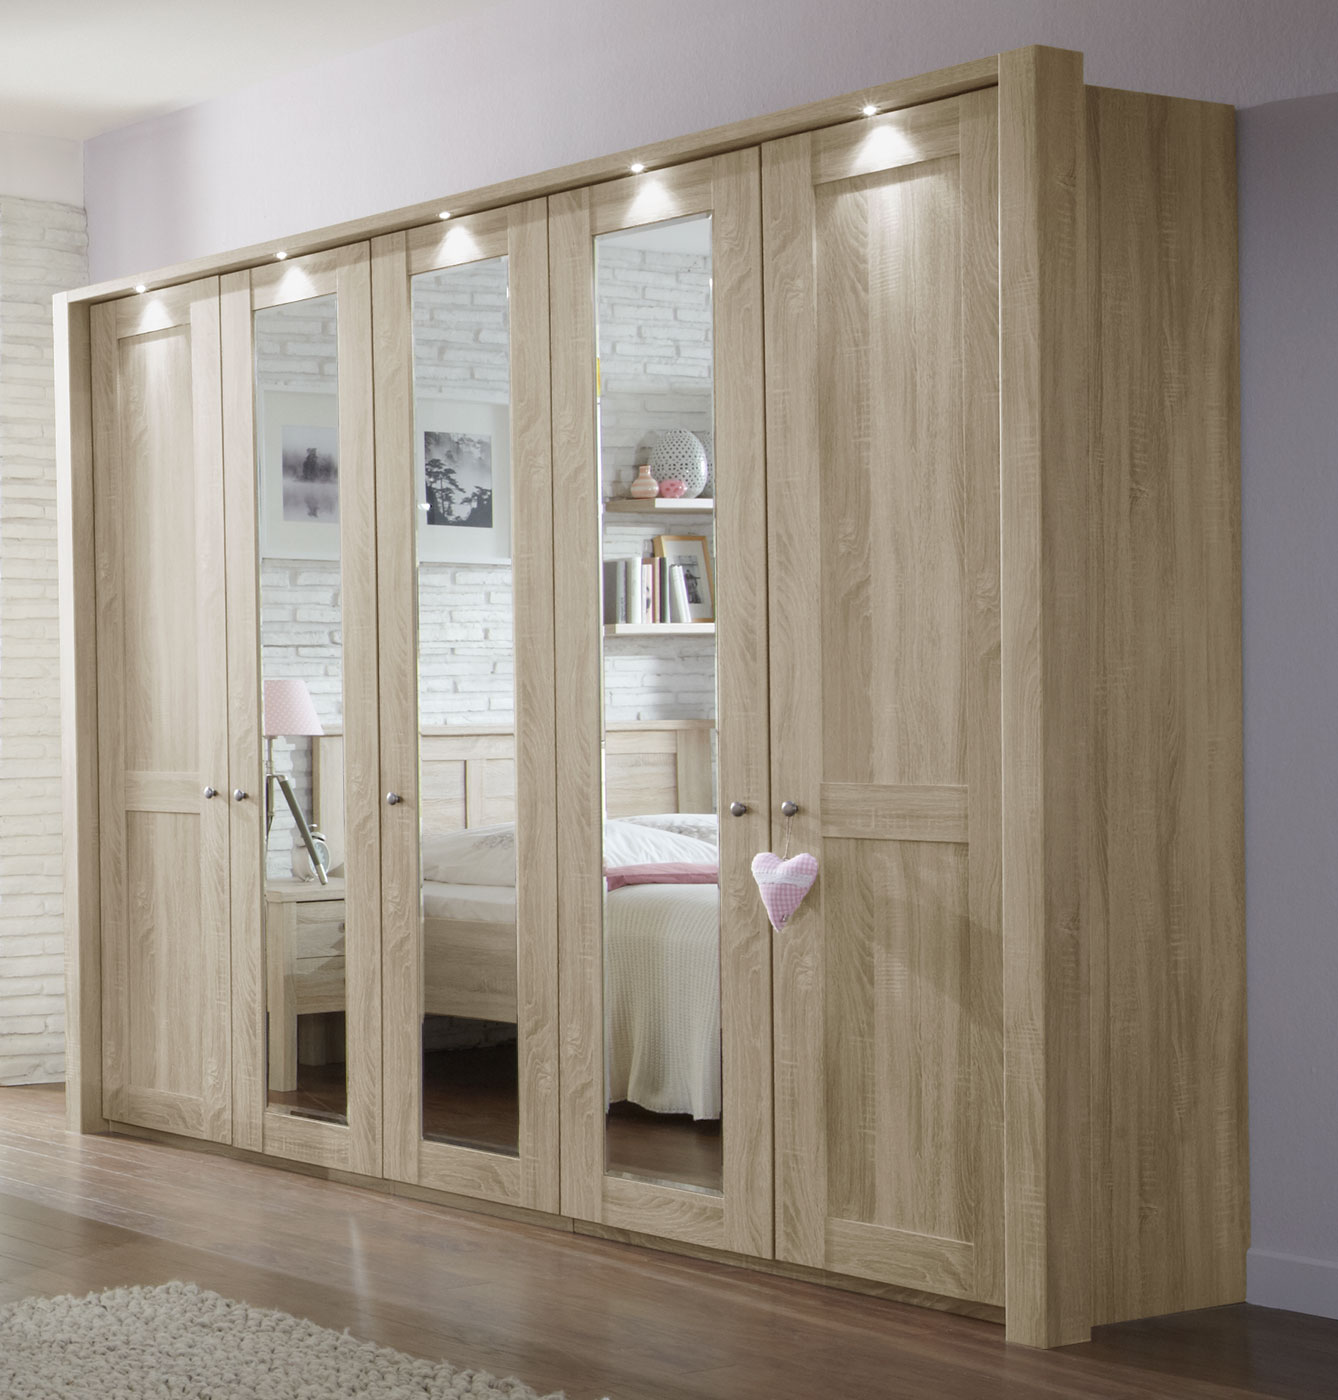 schrank mit dreht ren eiche s gerau dekor mit spiegelglas. Black Bedroom Furniture Sets. Home Design Ideas